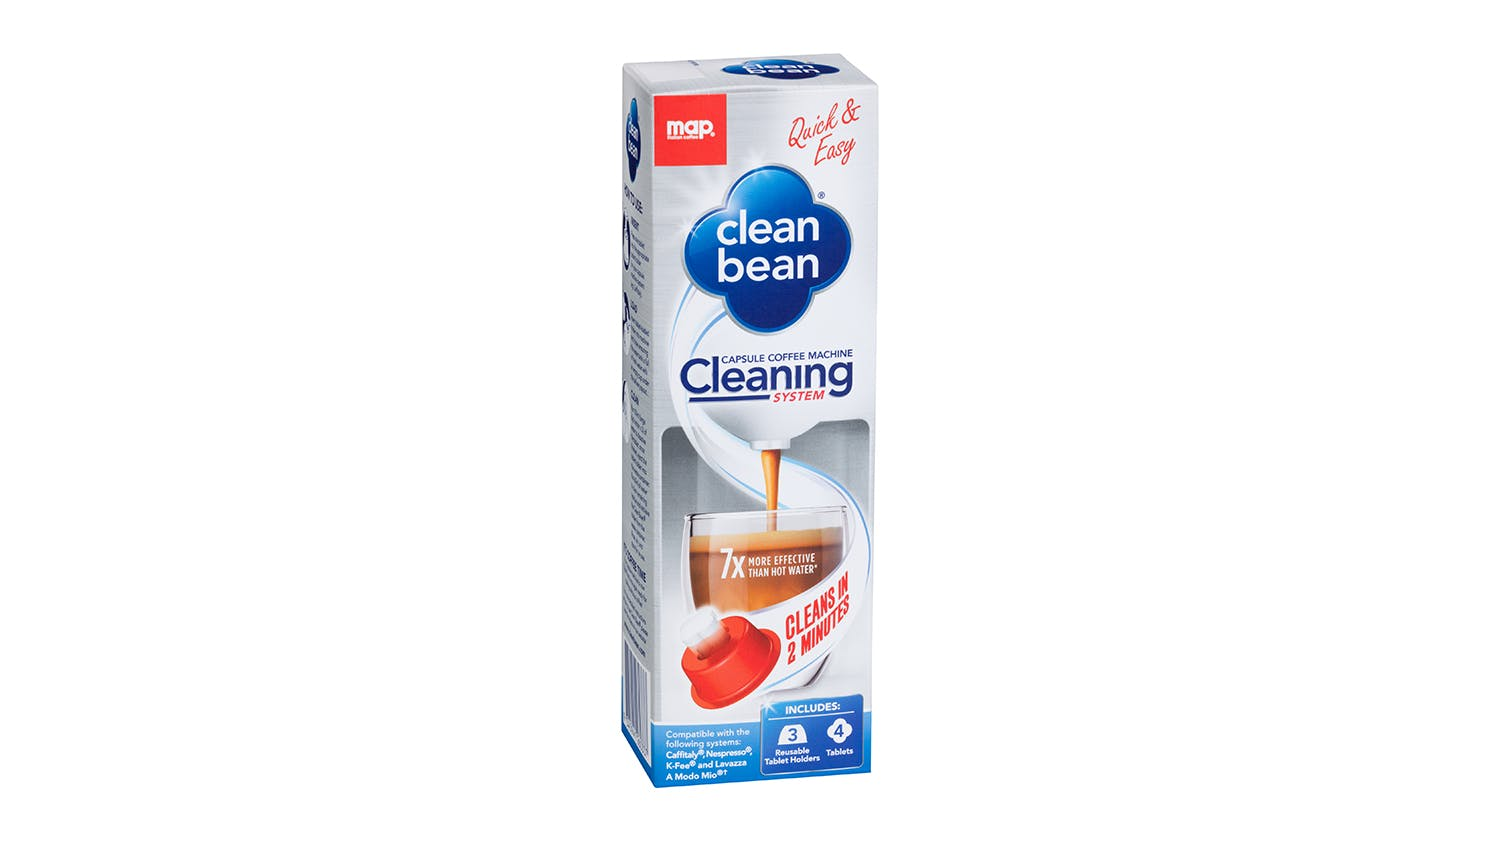 Image of Clean Bean Cleaning System